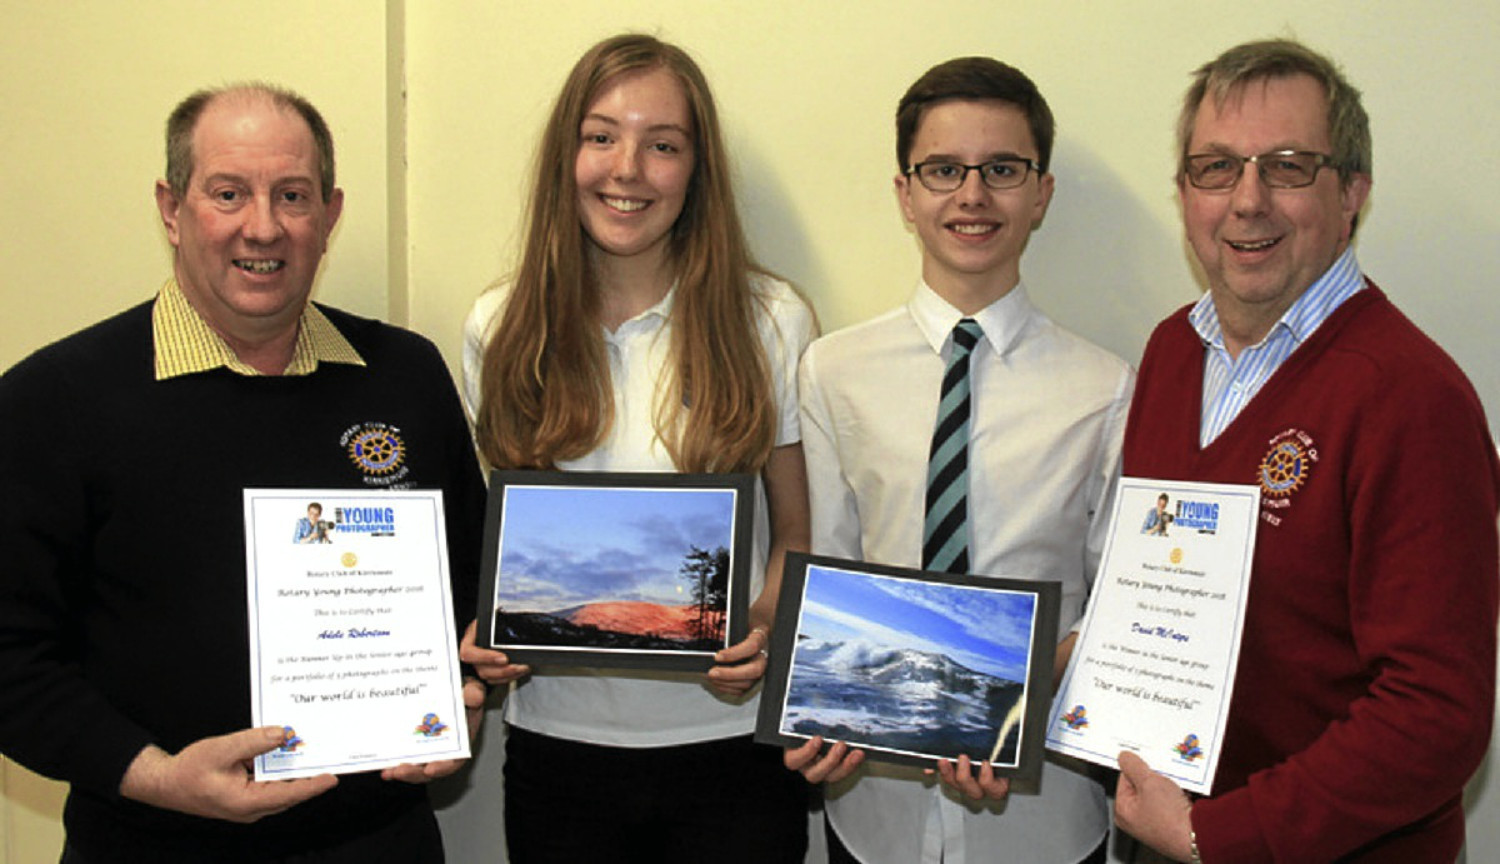 Kirriemuir Rotary Club president Mike Kiely (right) and Youth Service convenor James Arnott present certificates to David and Adele.